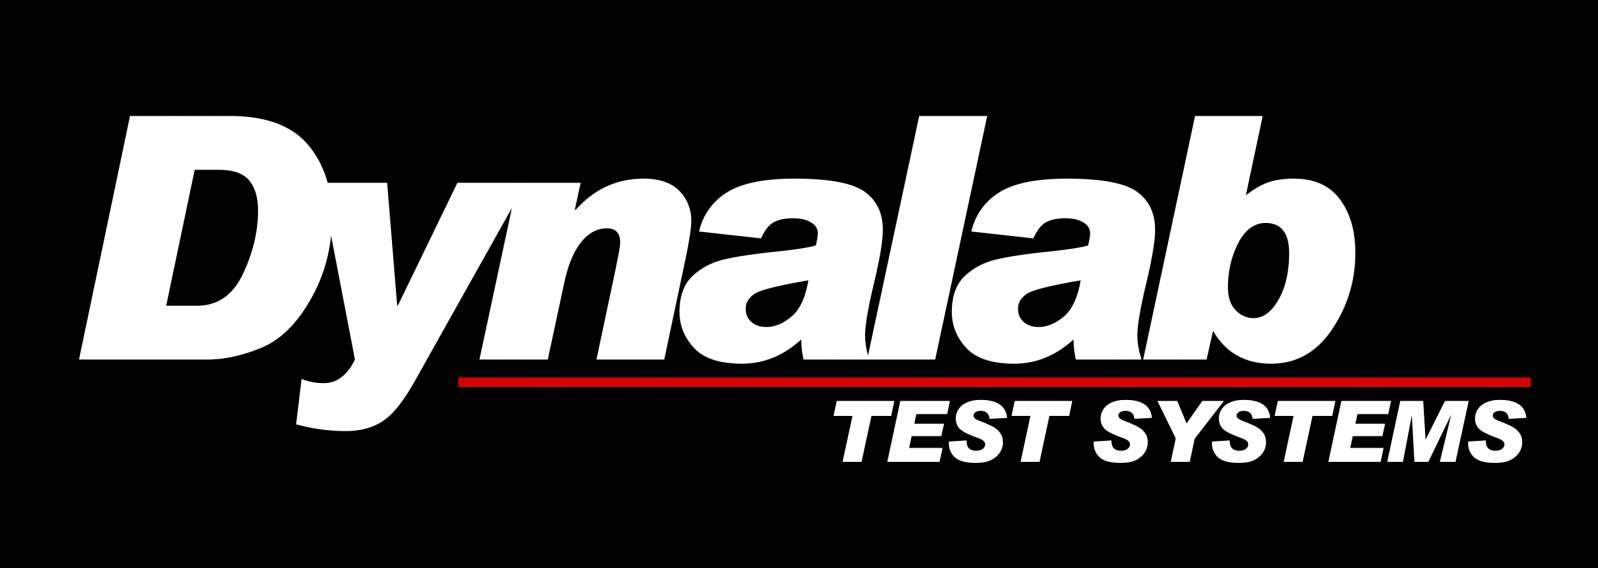 Dynalab Test Systems Logo